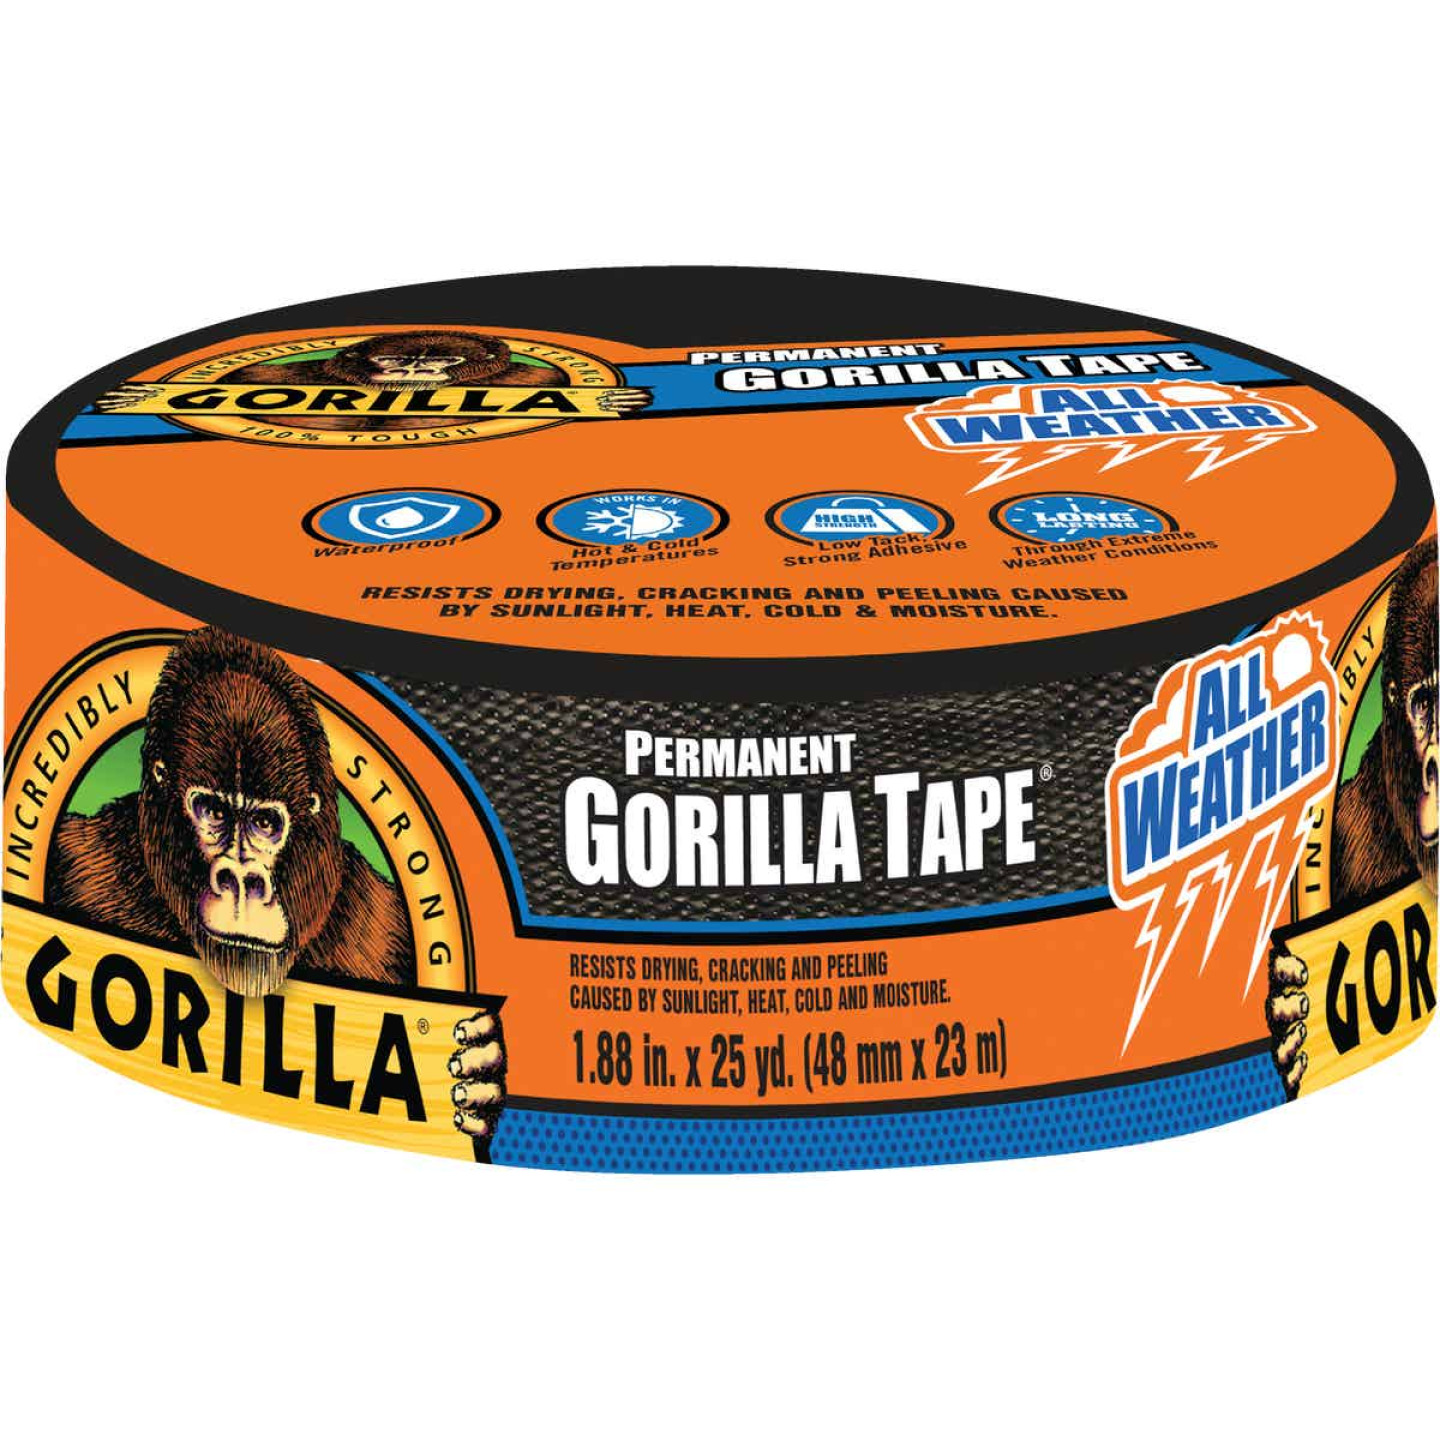 Gorilla 1.88 In. x 25 Yd. All Weather Repair Tape, Black Image 1